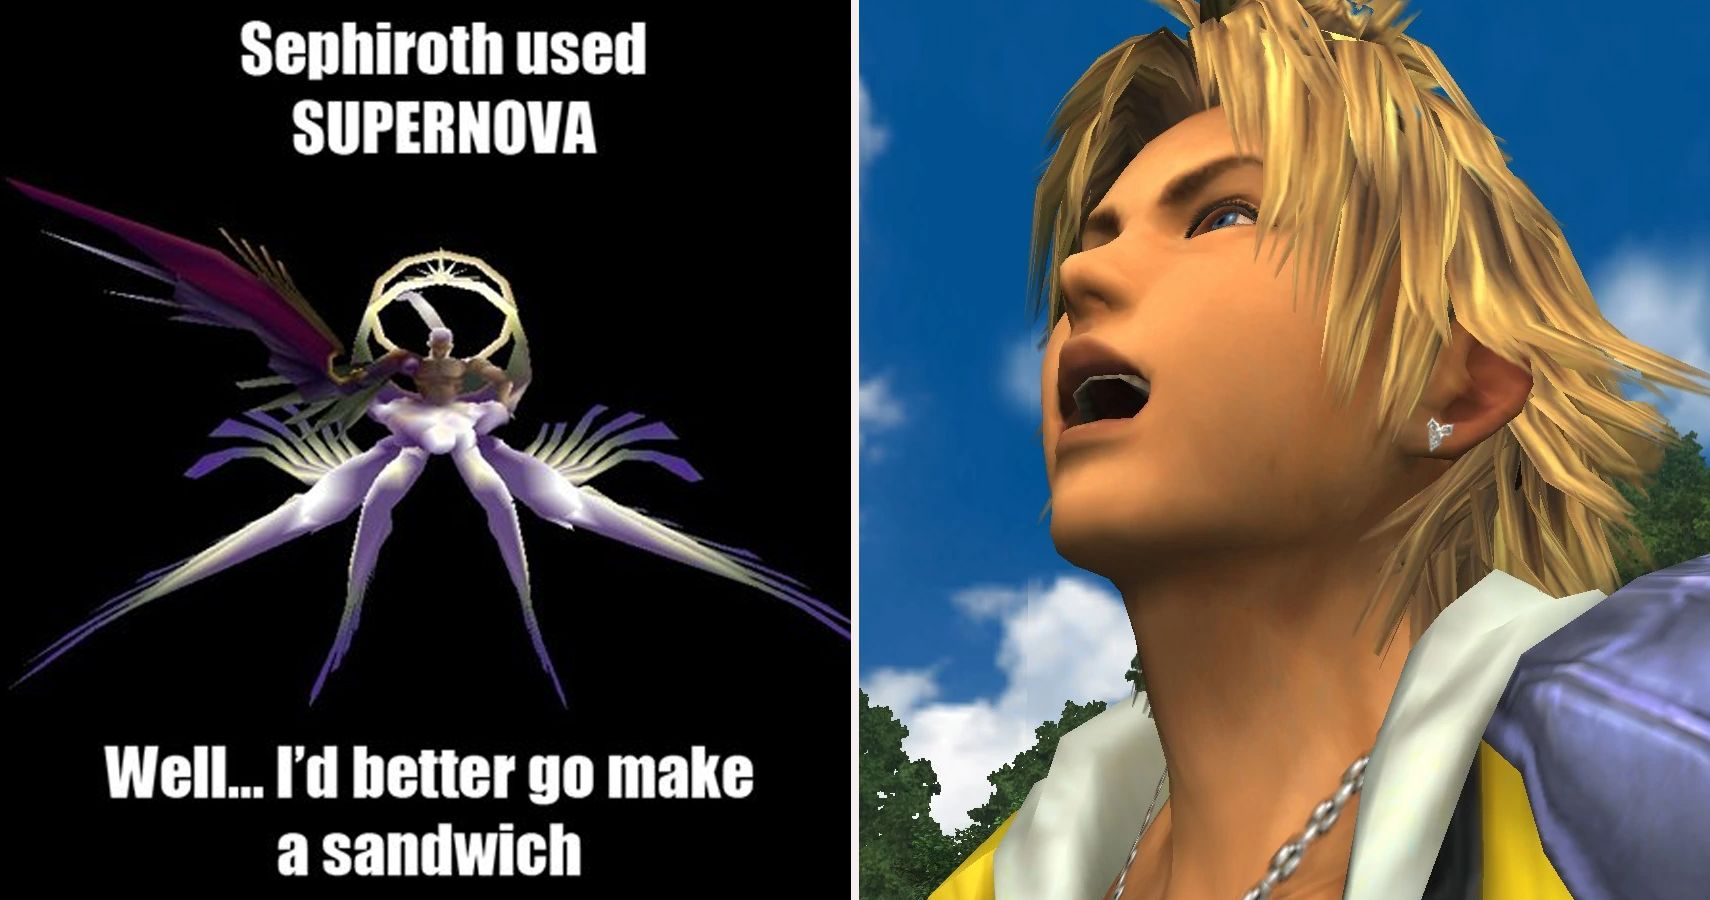 15 Hilarious Final Fantasy Memes Only True Fans Will Understand